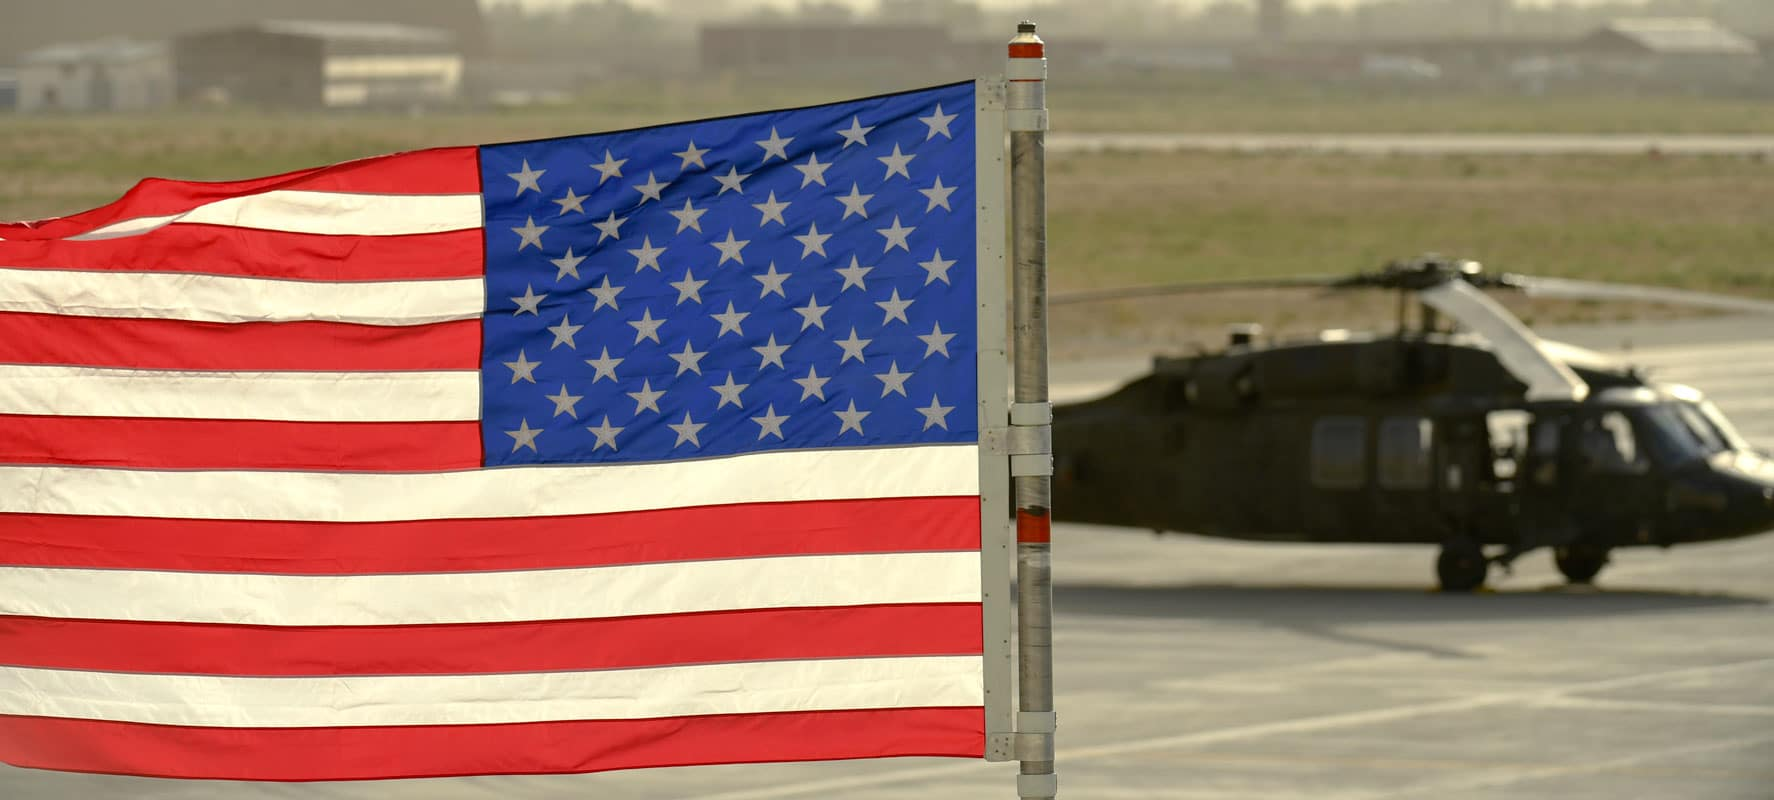 (Bagram, Afghanistan) The American flag waves in the wind with a UH-60 Blackhawk helicopter assigned to Task Force Shadow parked on the flight line.